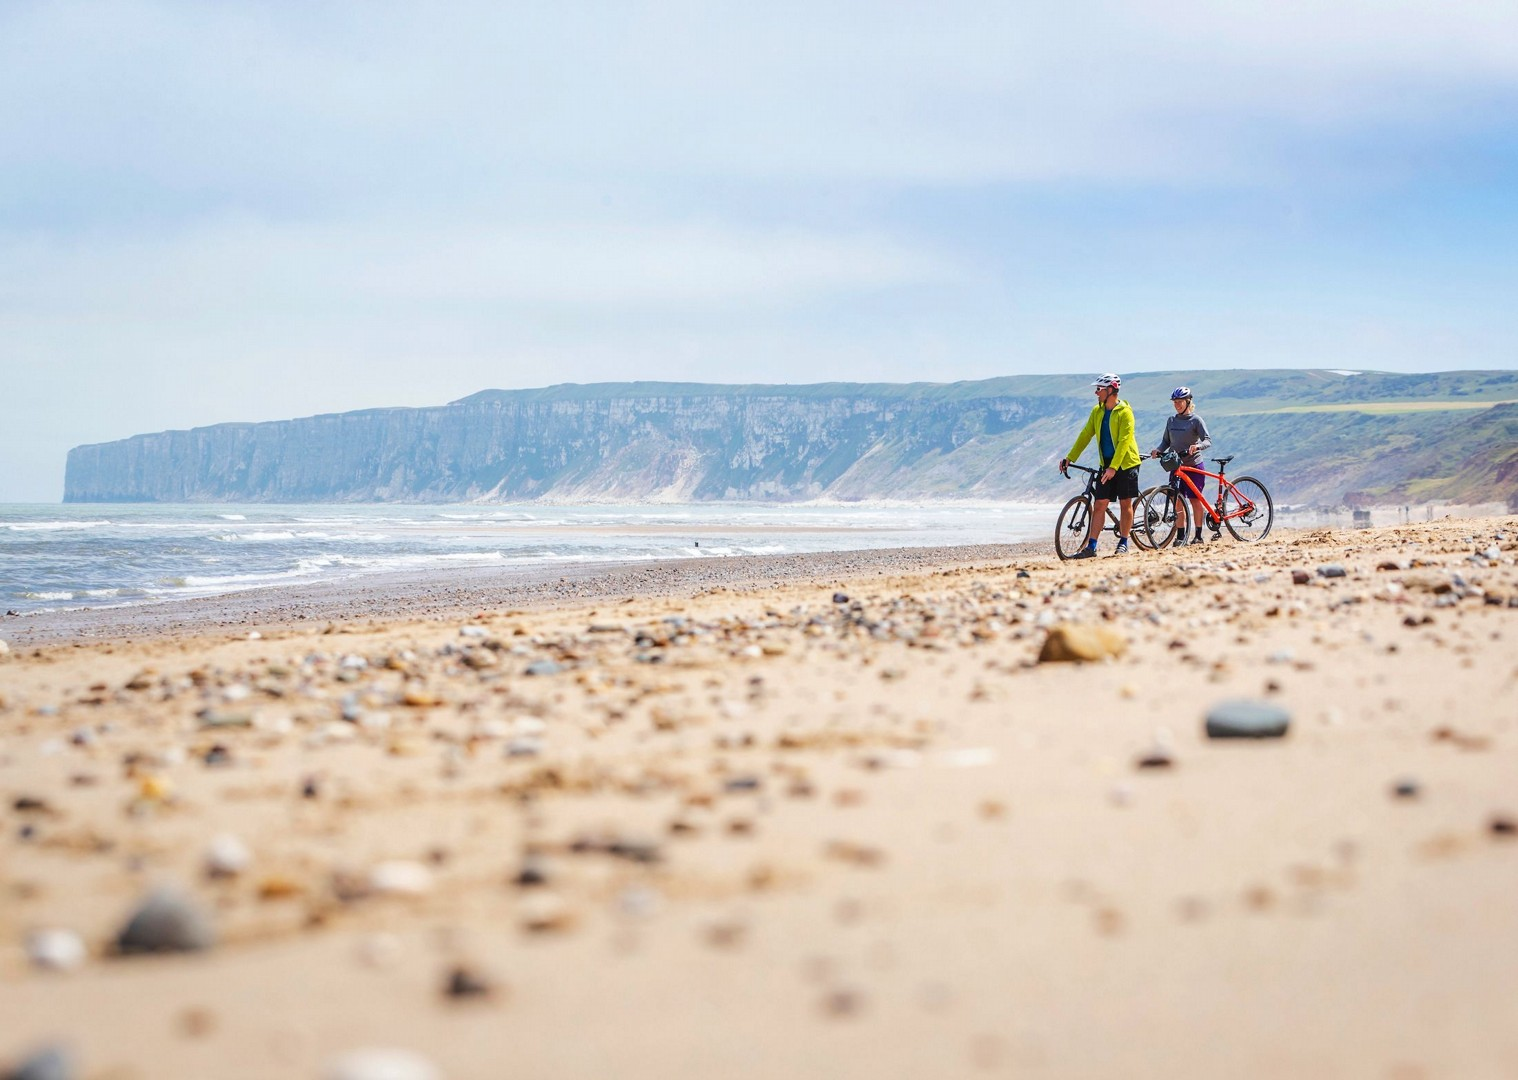 bridlington-yorkshire-cycling-tour-saddle-skedaddle.jpg - UK - Way of the Roses - Supported Leisure Cycling Holiday - Leisure Cycling